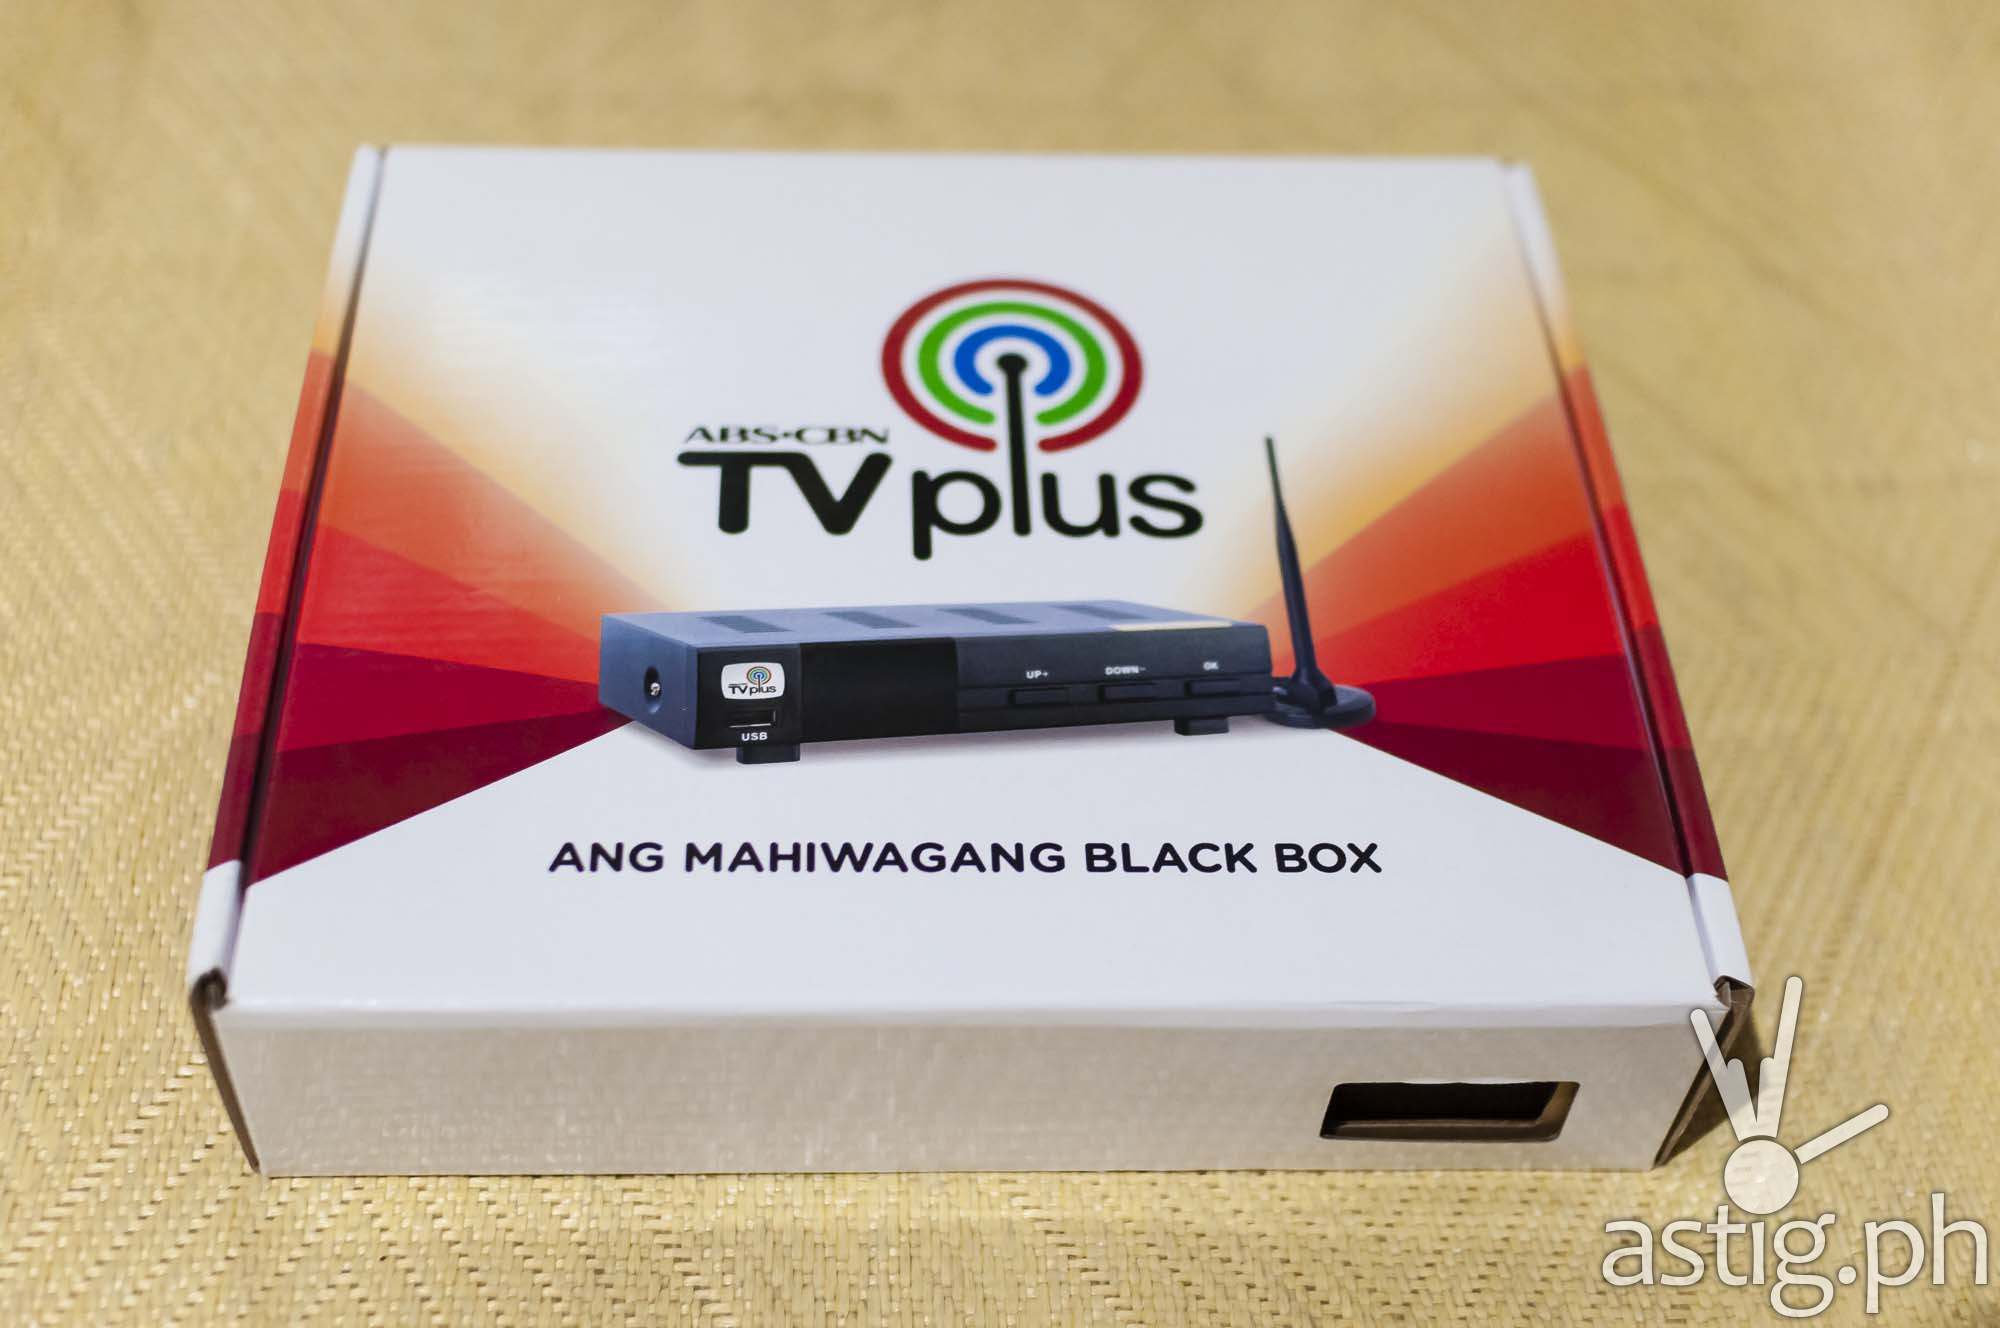 Abs Cbn Tvplus Review Astigph